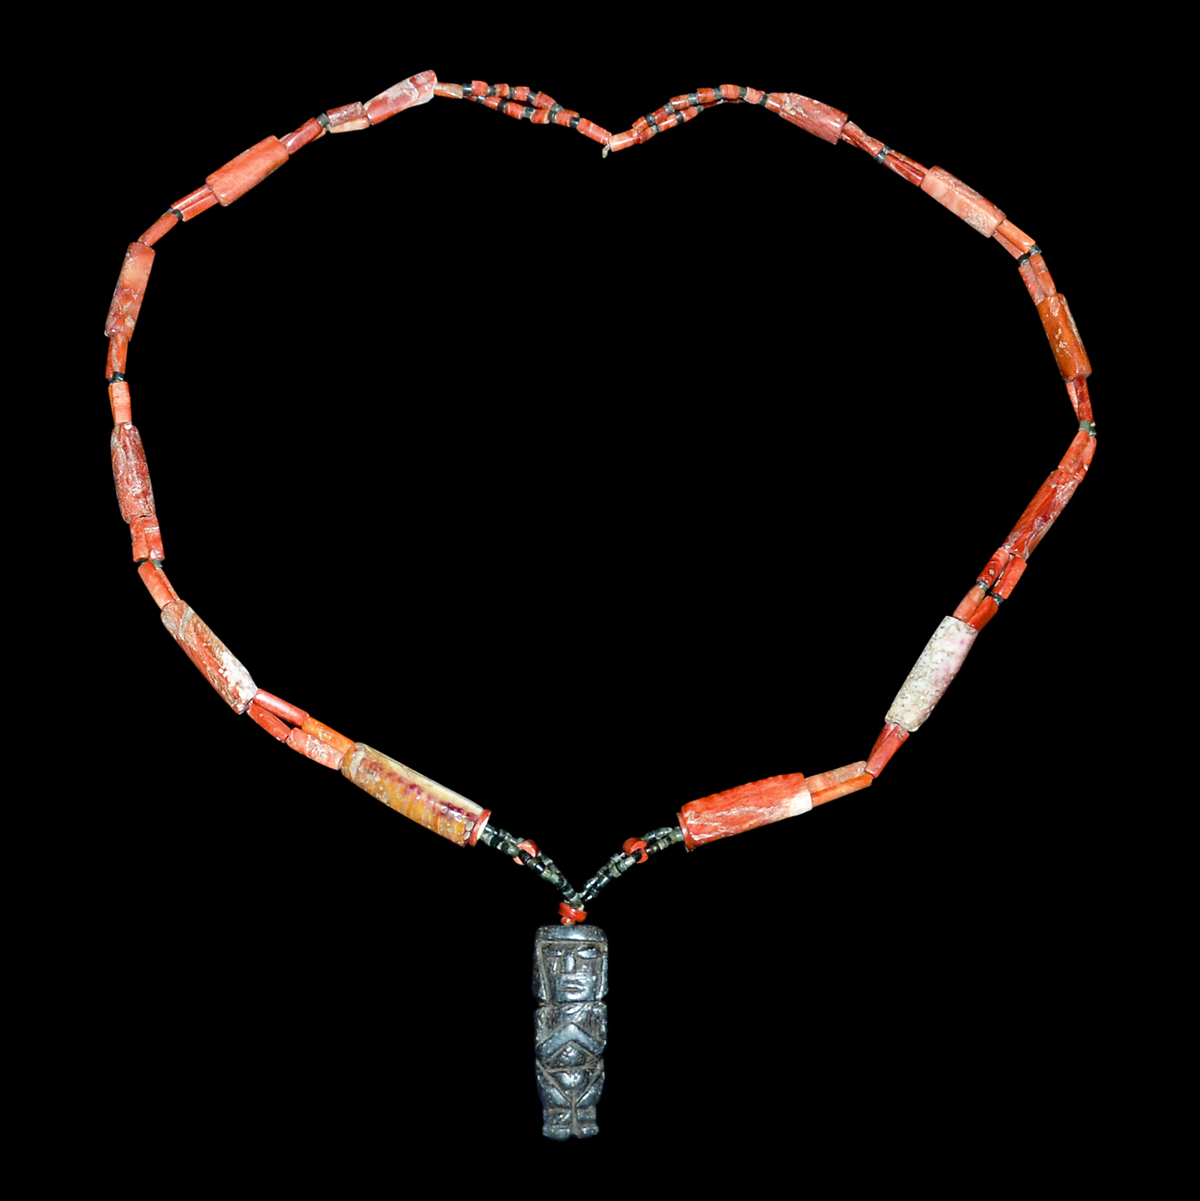 Lot 18 - 舊紅珊瑚筒形珠項鏈掛飾 Coral Necklace with Cylindrical Beads and a Figure Pendant Diameter: 9½ in (24.1 cm)